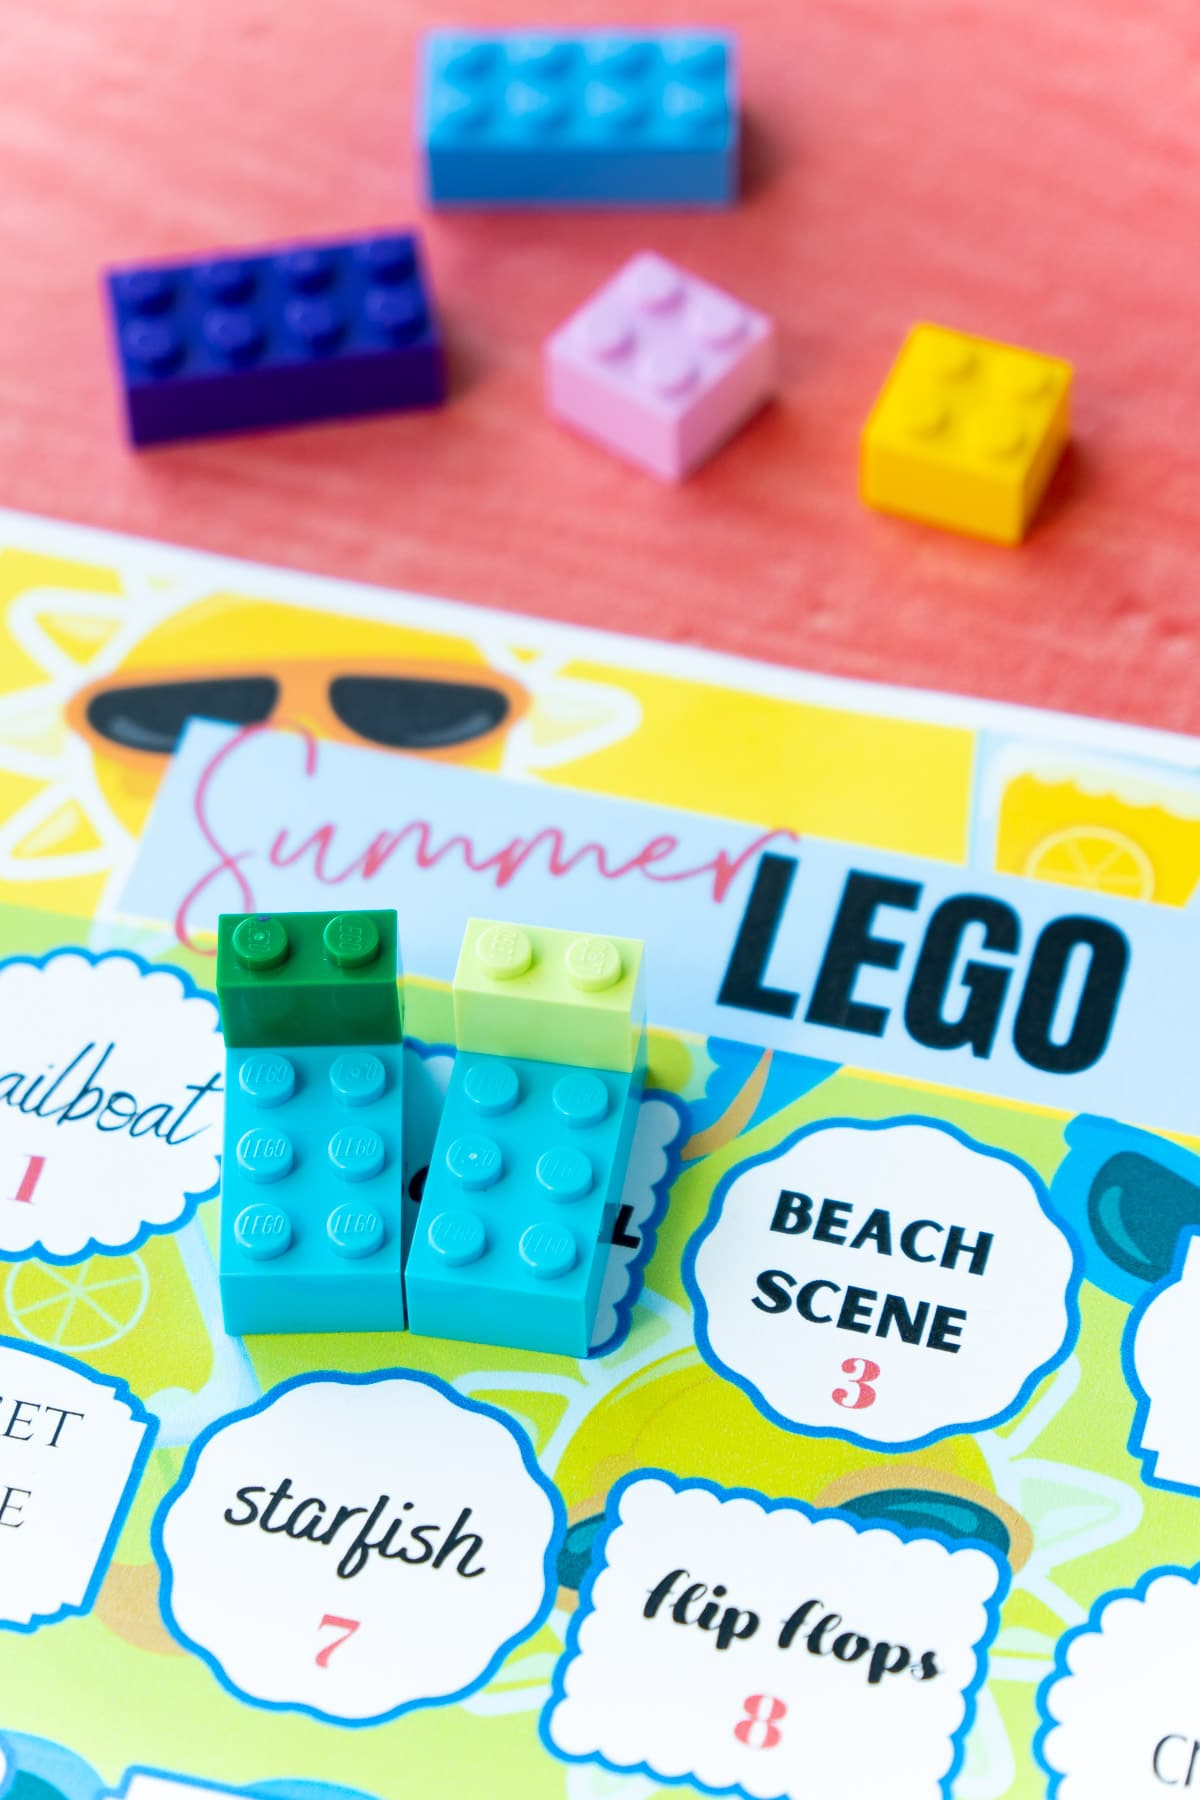 Beach chairs on top of lego challenge ideas